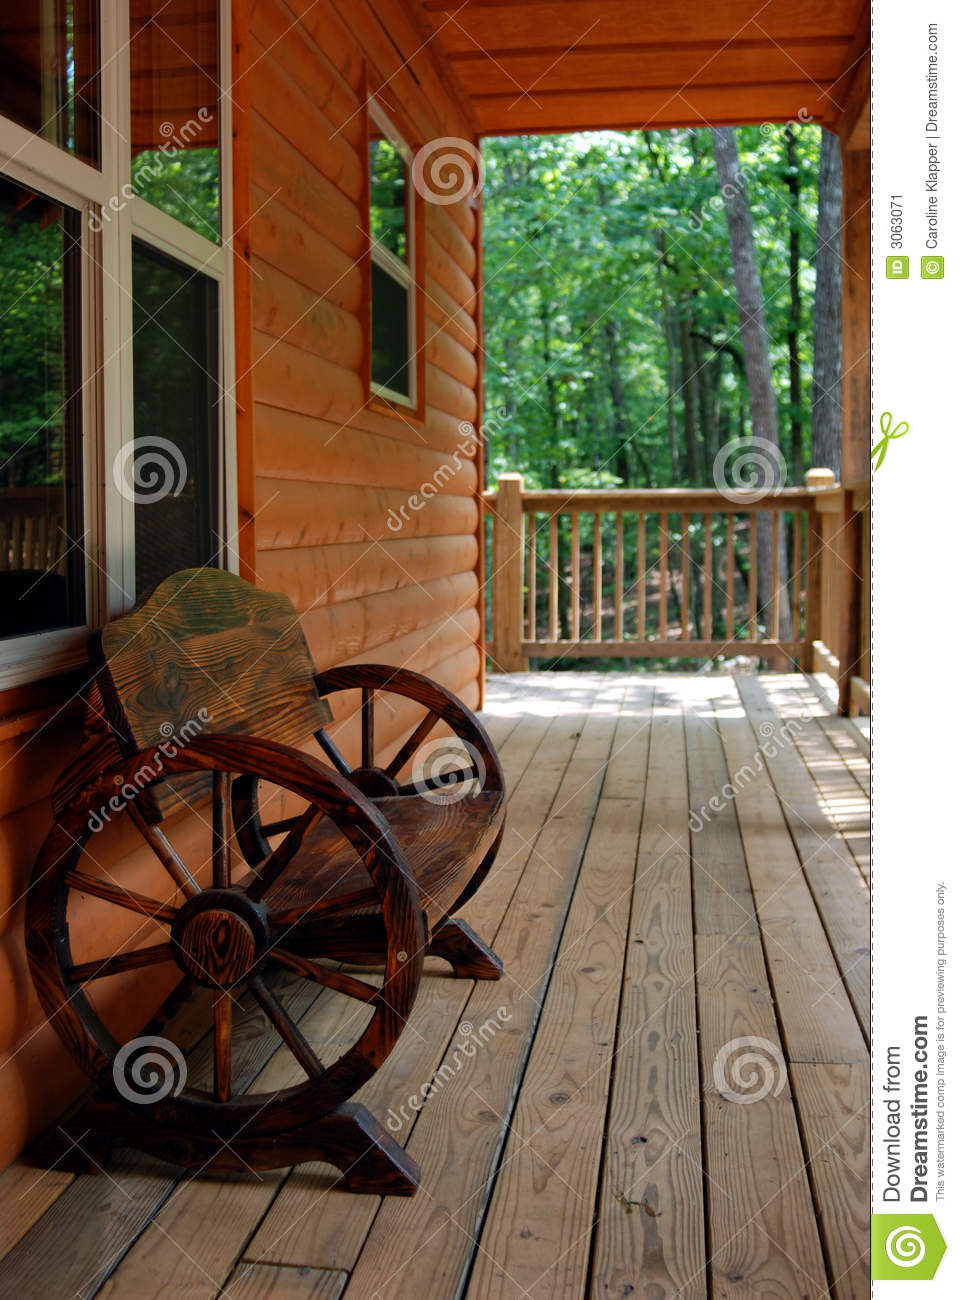 Rustic Wagon Wheel Bench Stock Image Image Of Bench